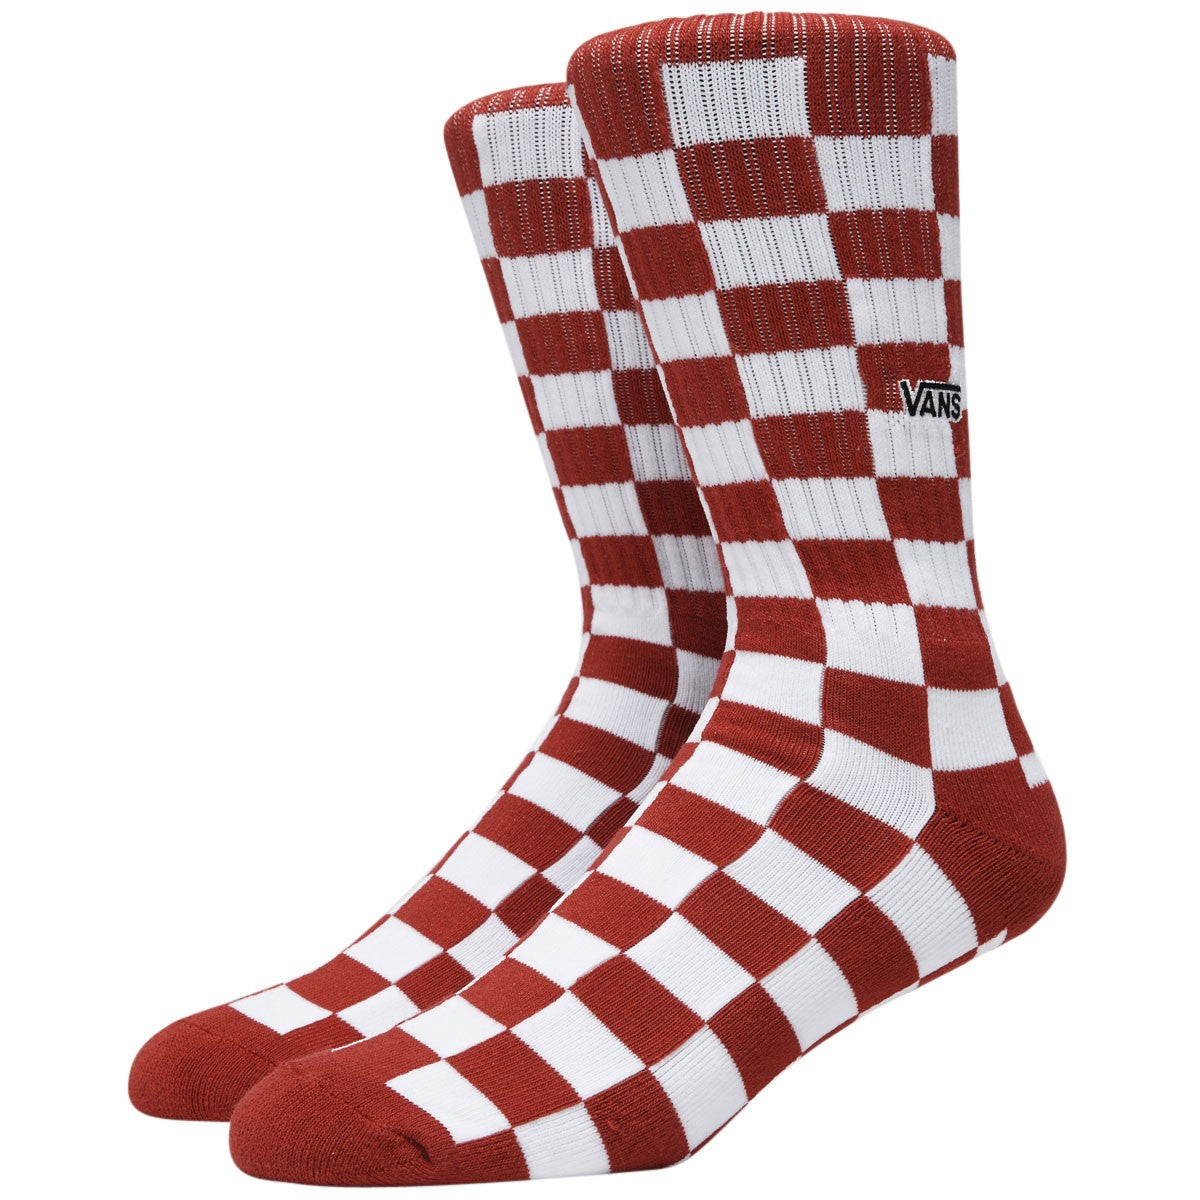 Vans Checkerboard Crew Sock Red/White